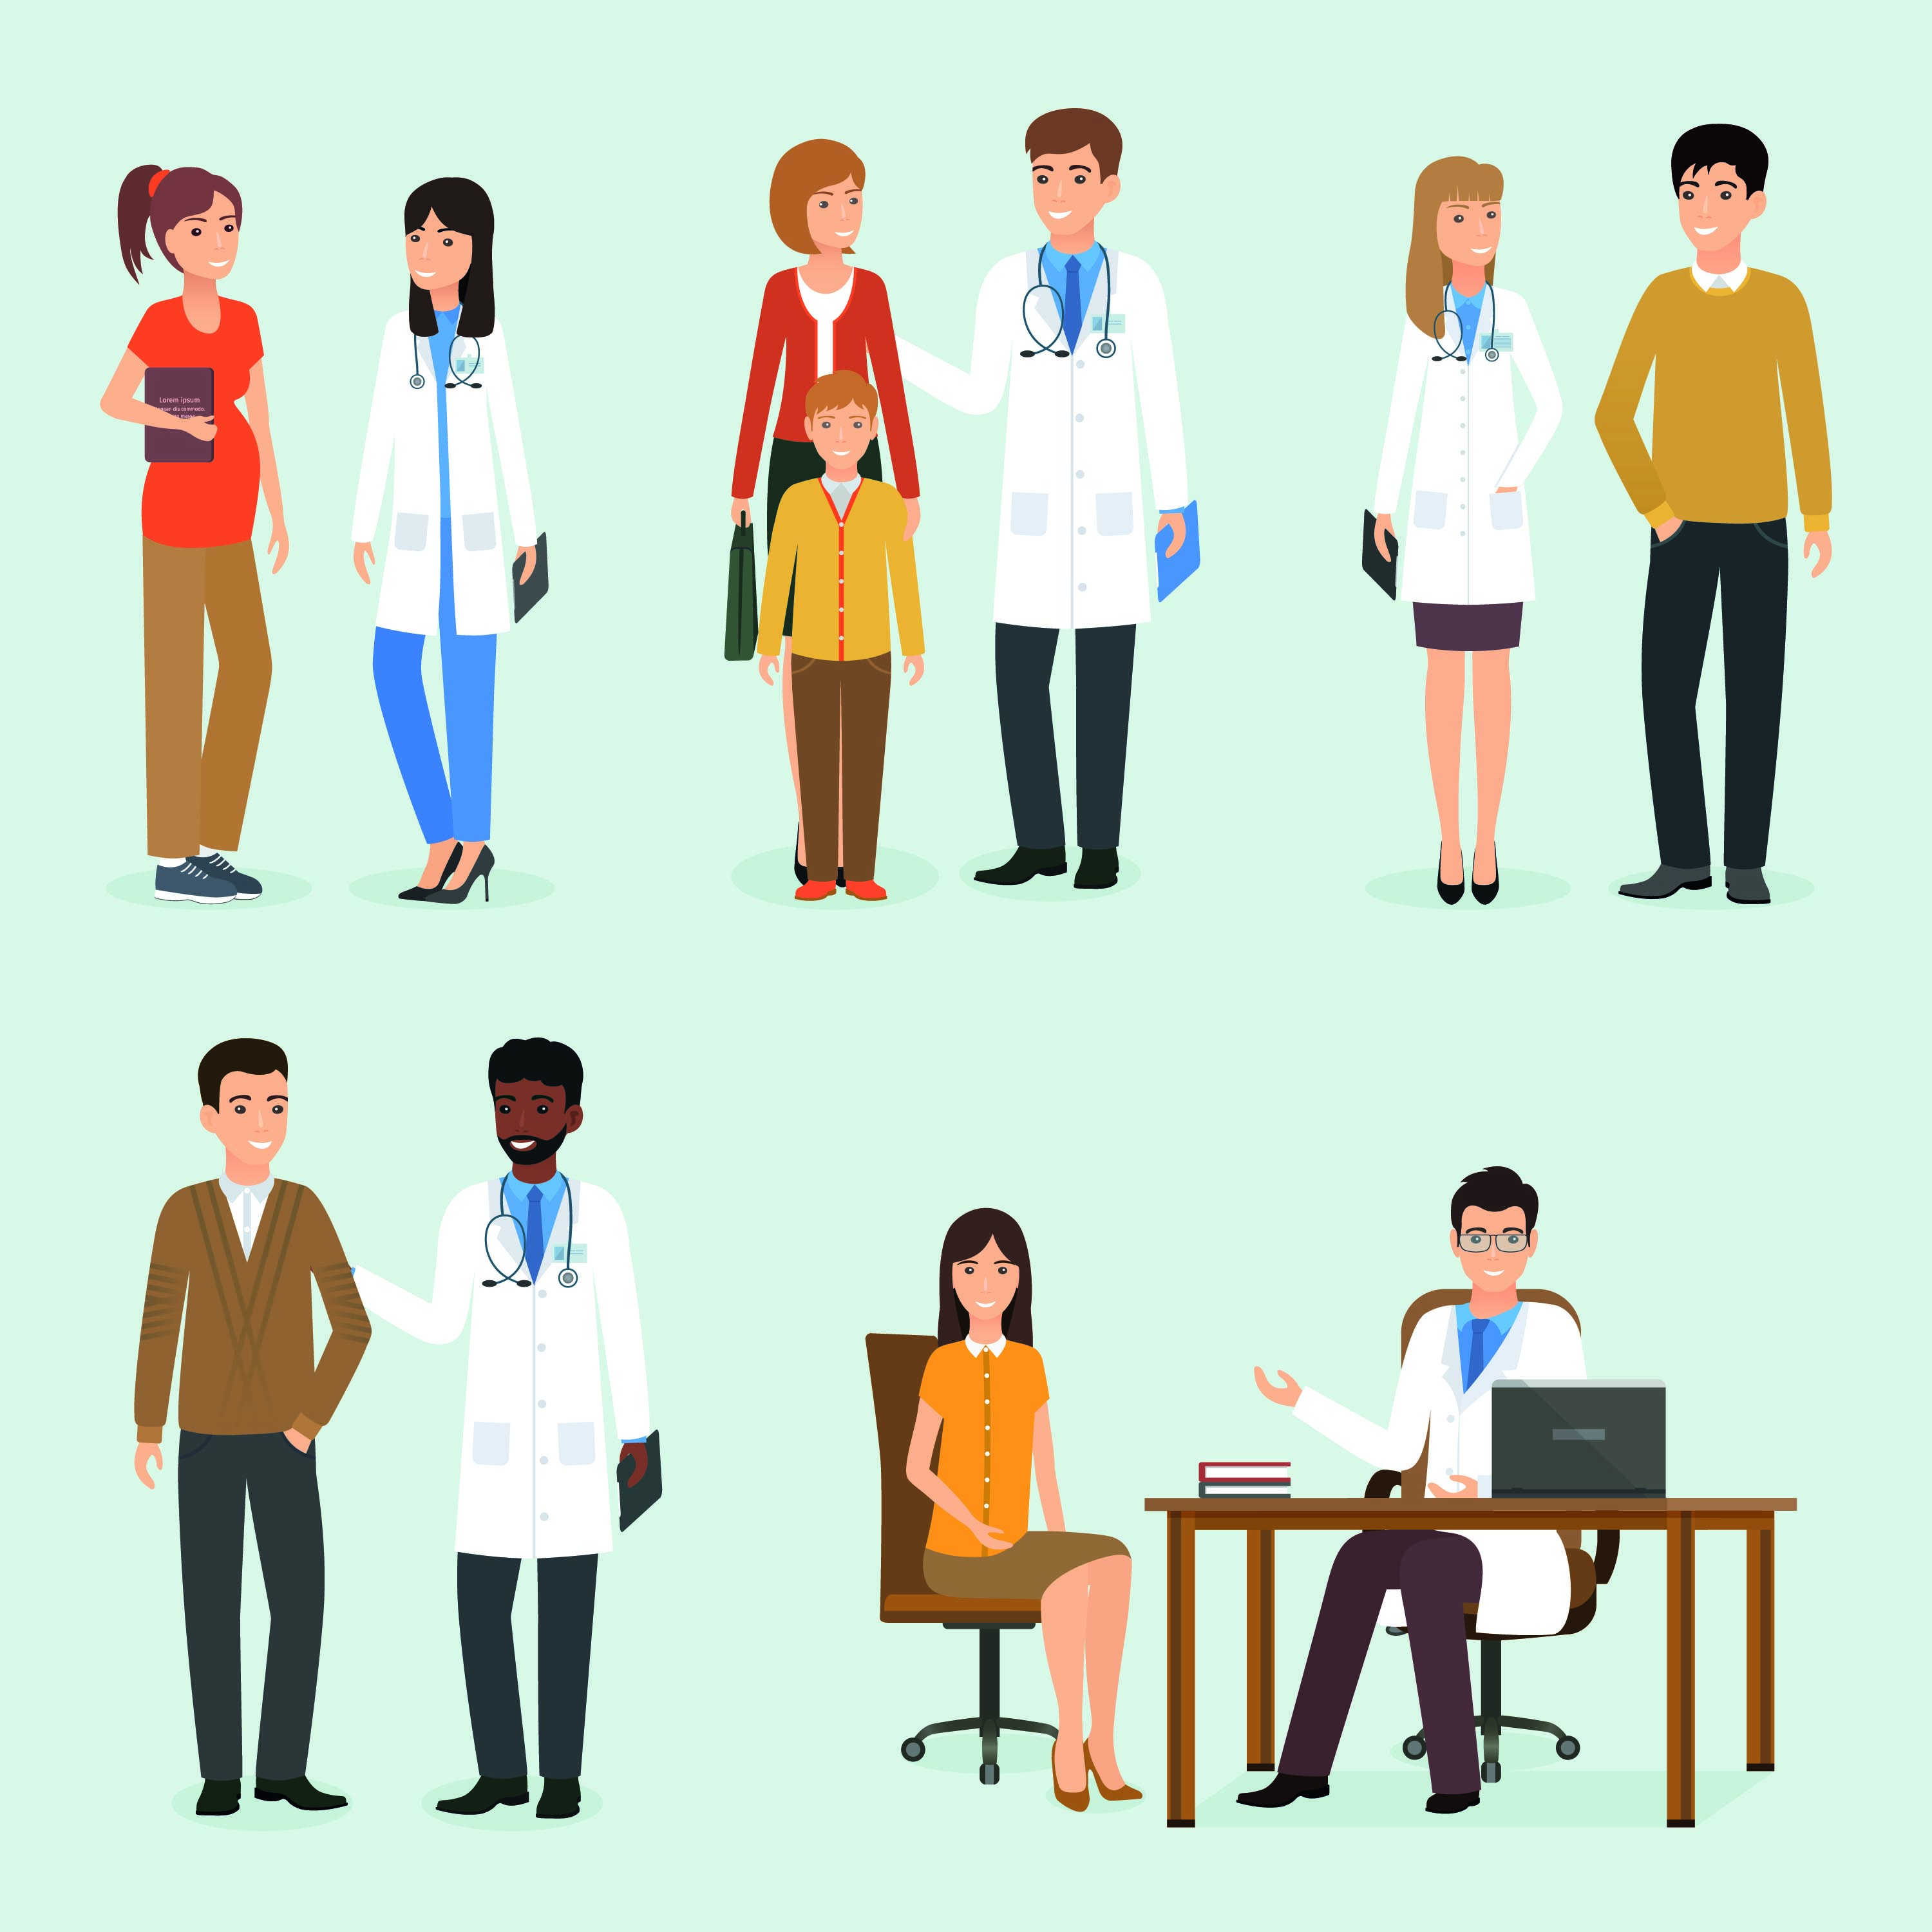 Healthcare professionals with patients